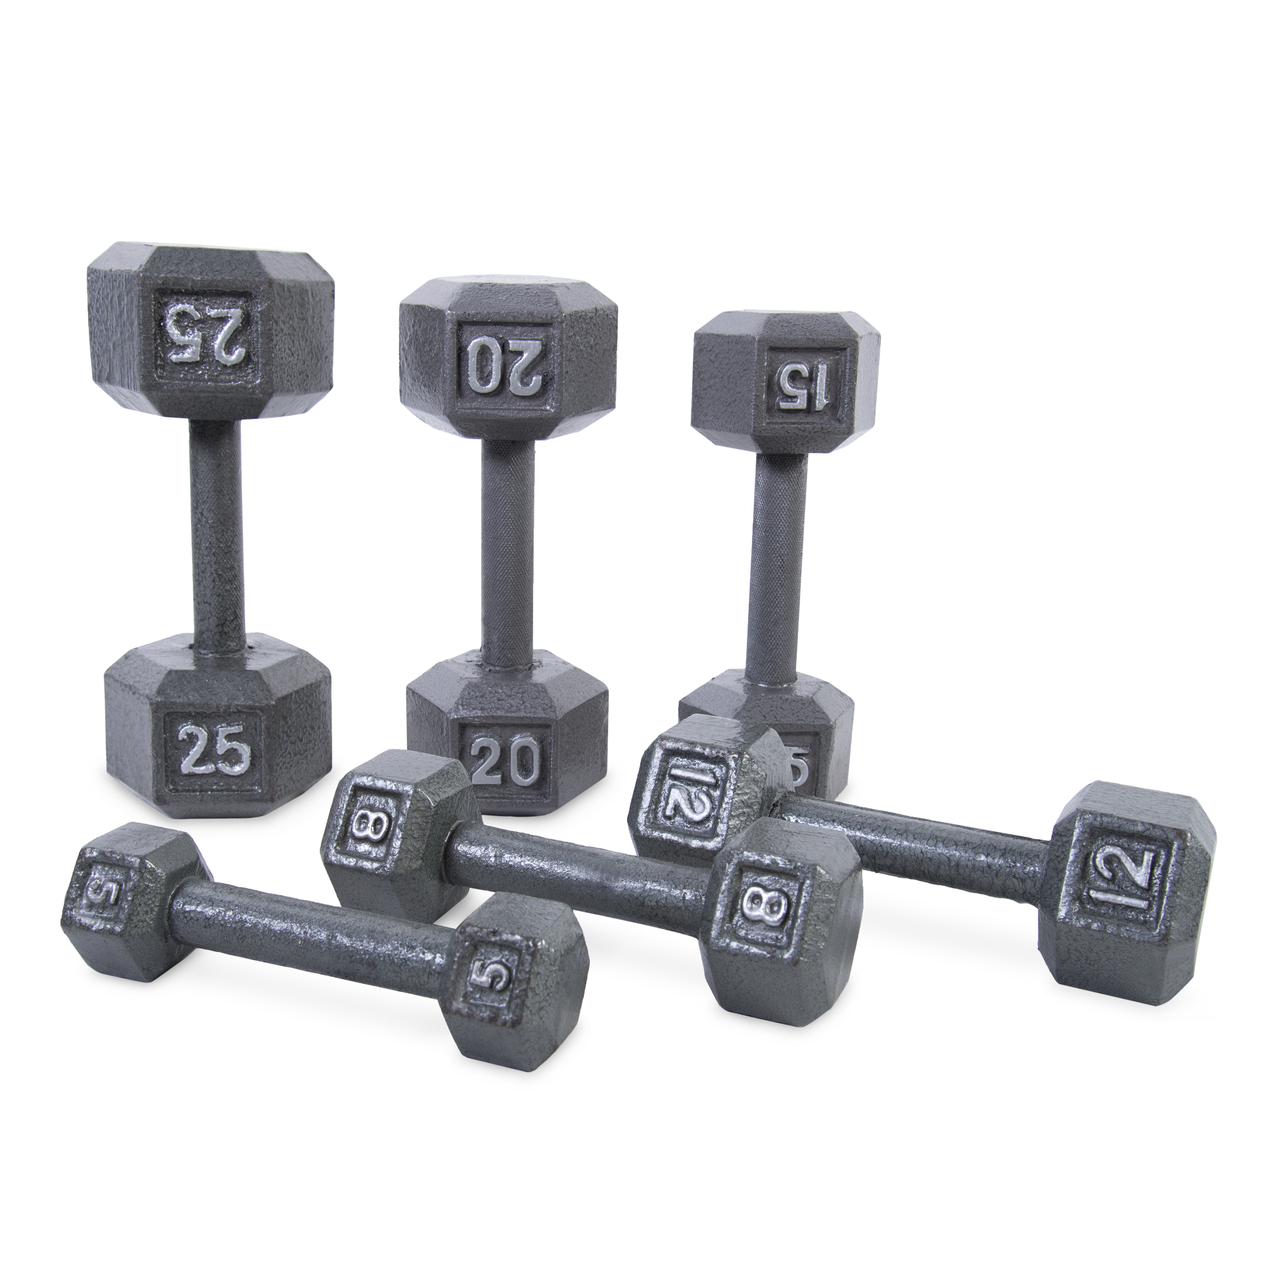 Hex Dumbbell 30 lb Training Workout Durable Cast Iron Gray Strength Accessory